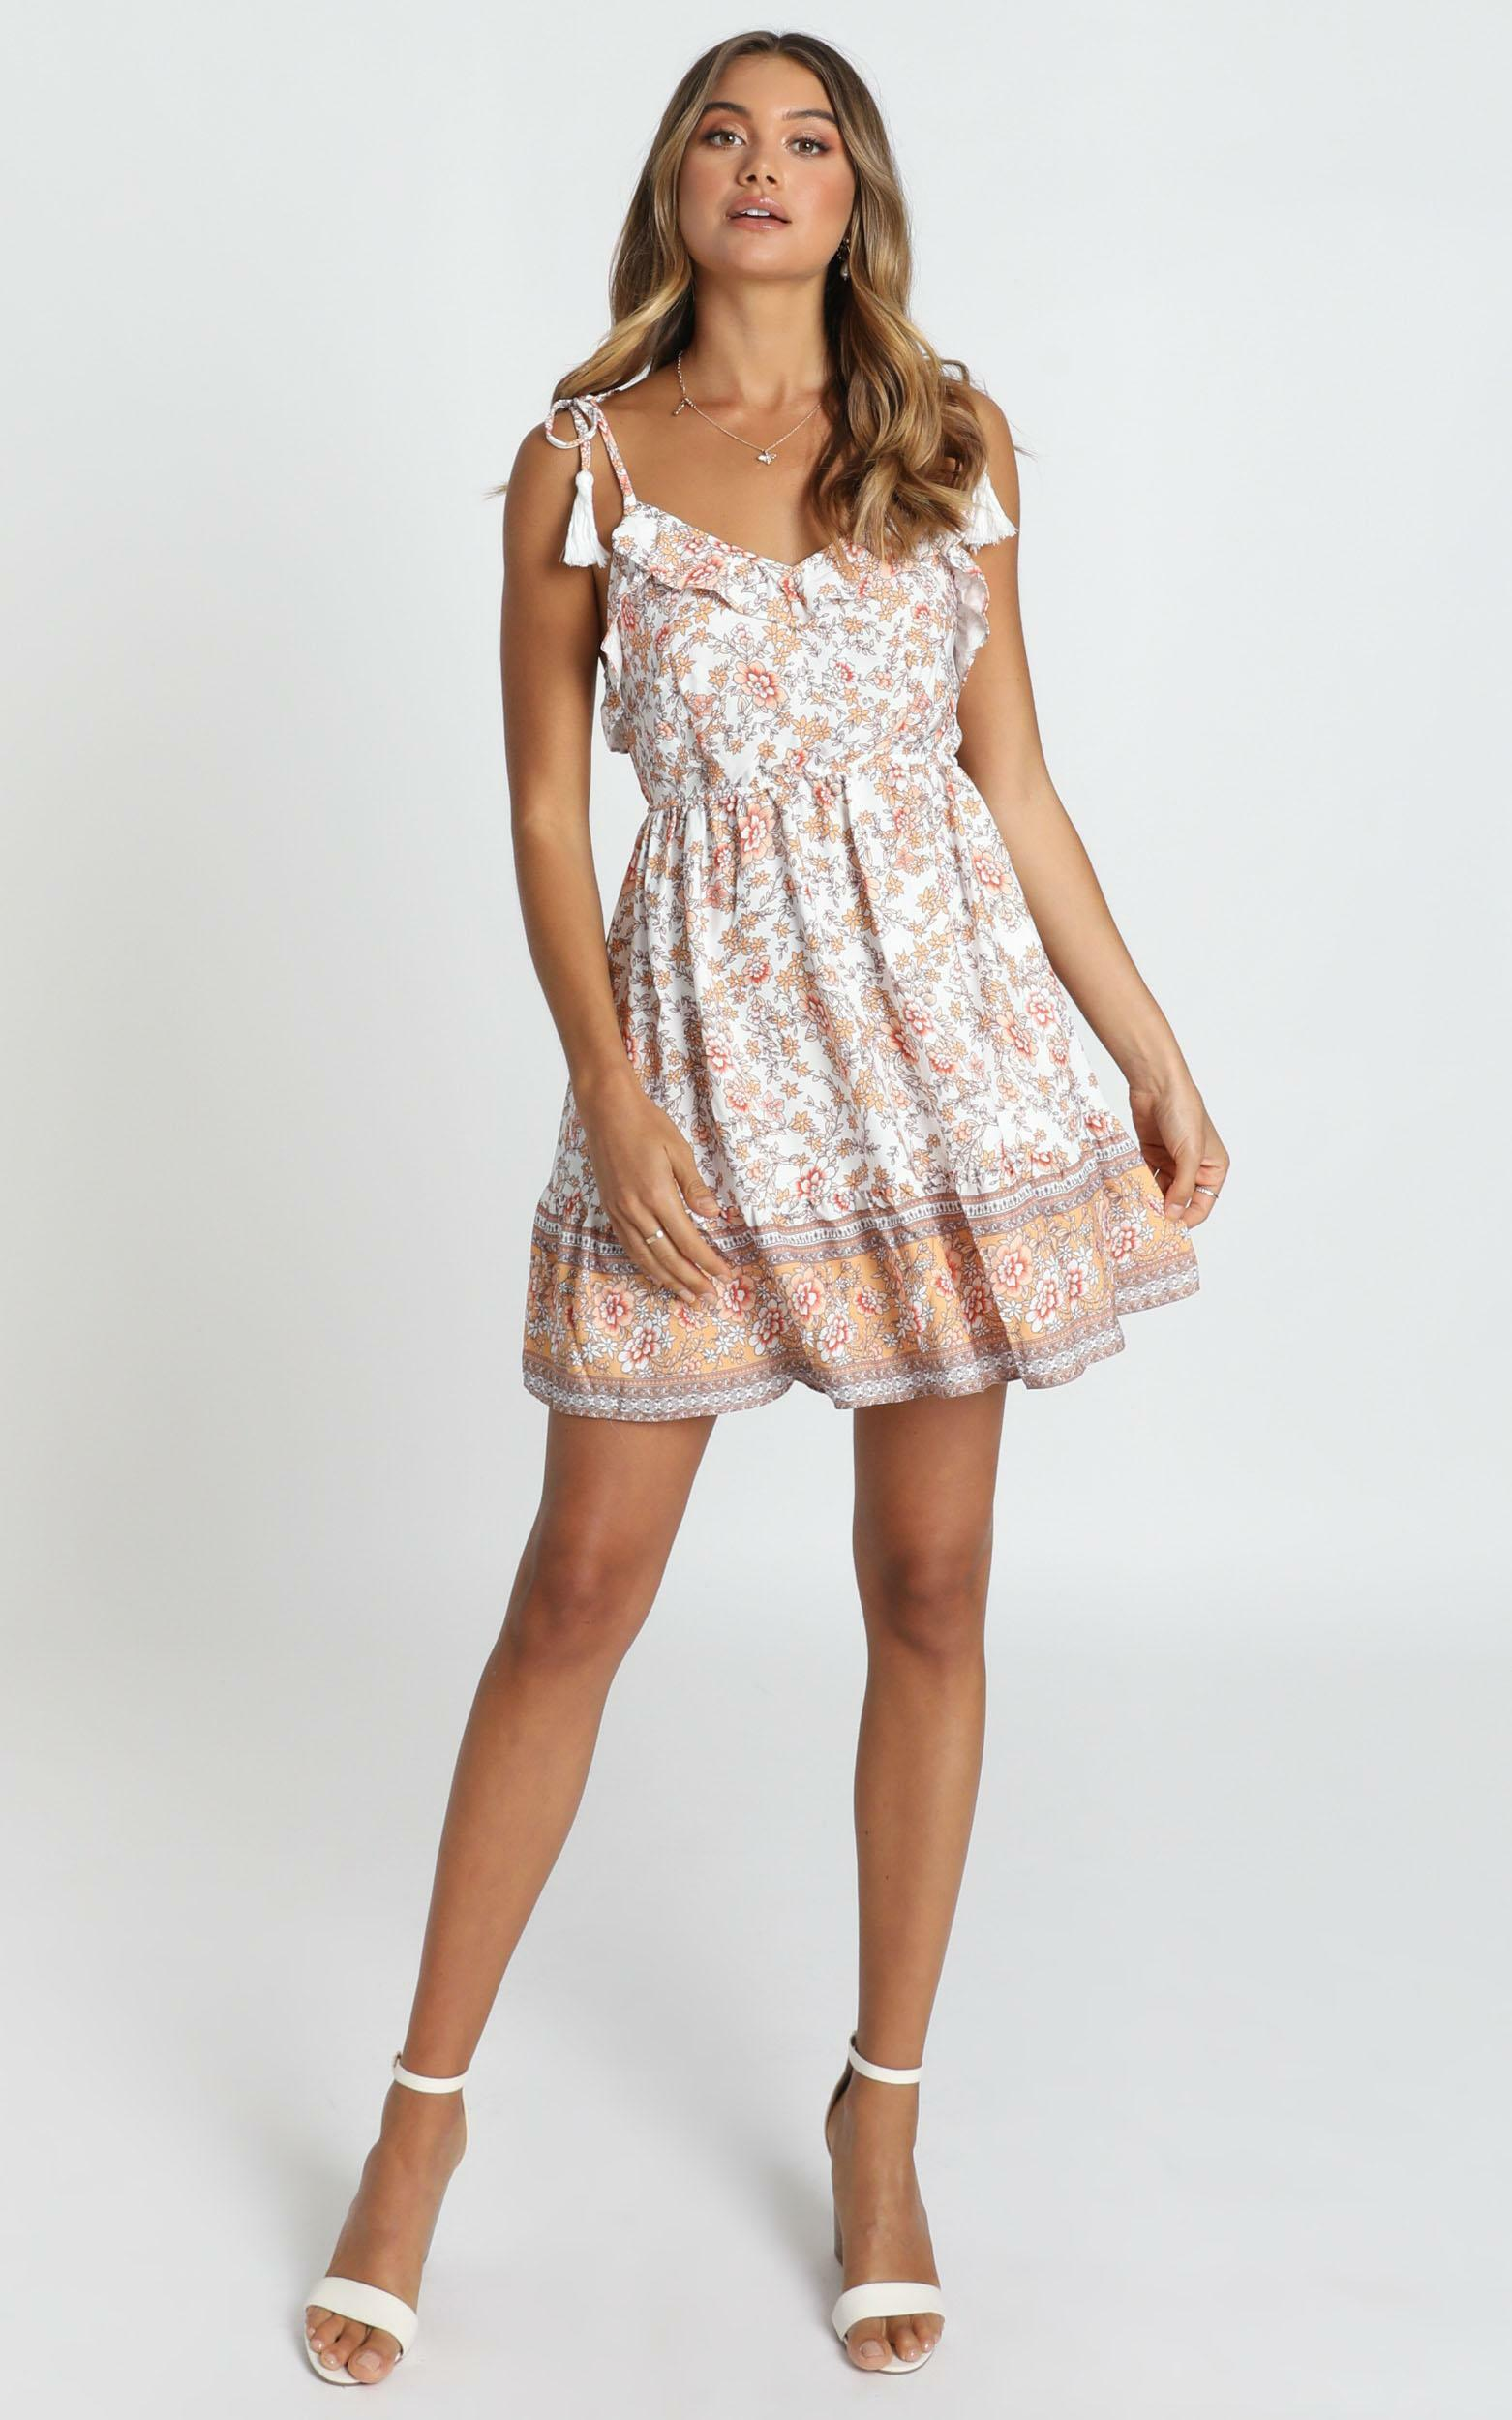 Lillian Tie Strap Dress in white floral - 12 (L), White, hi-res image number null